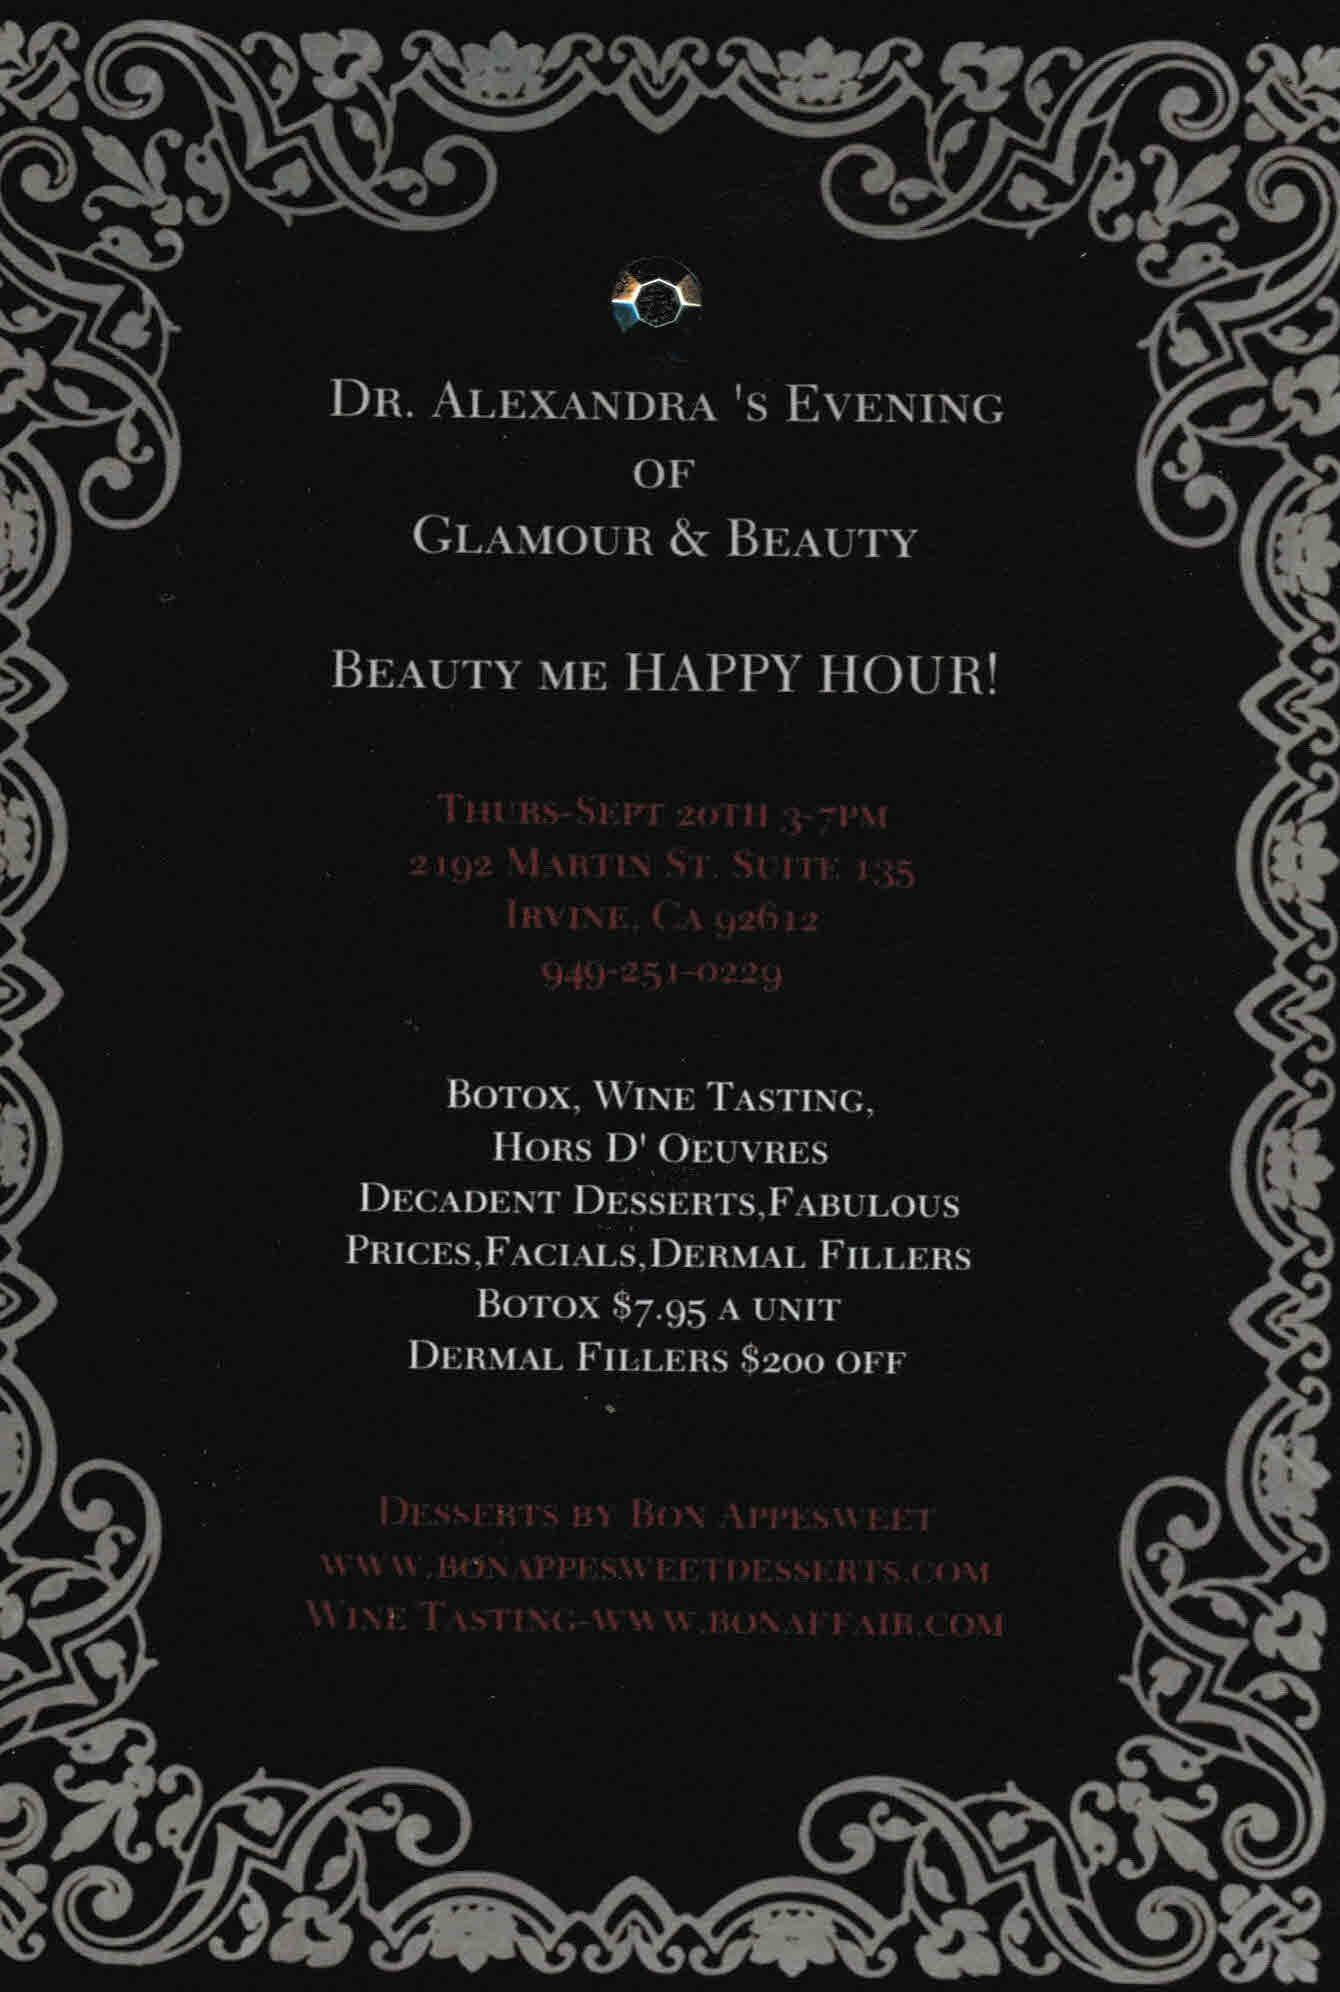 botox parties beauty me happy hour my business simply beauty me happy hour